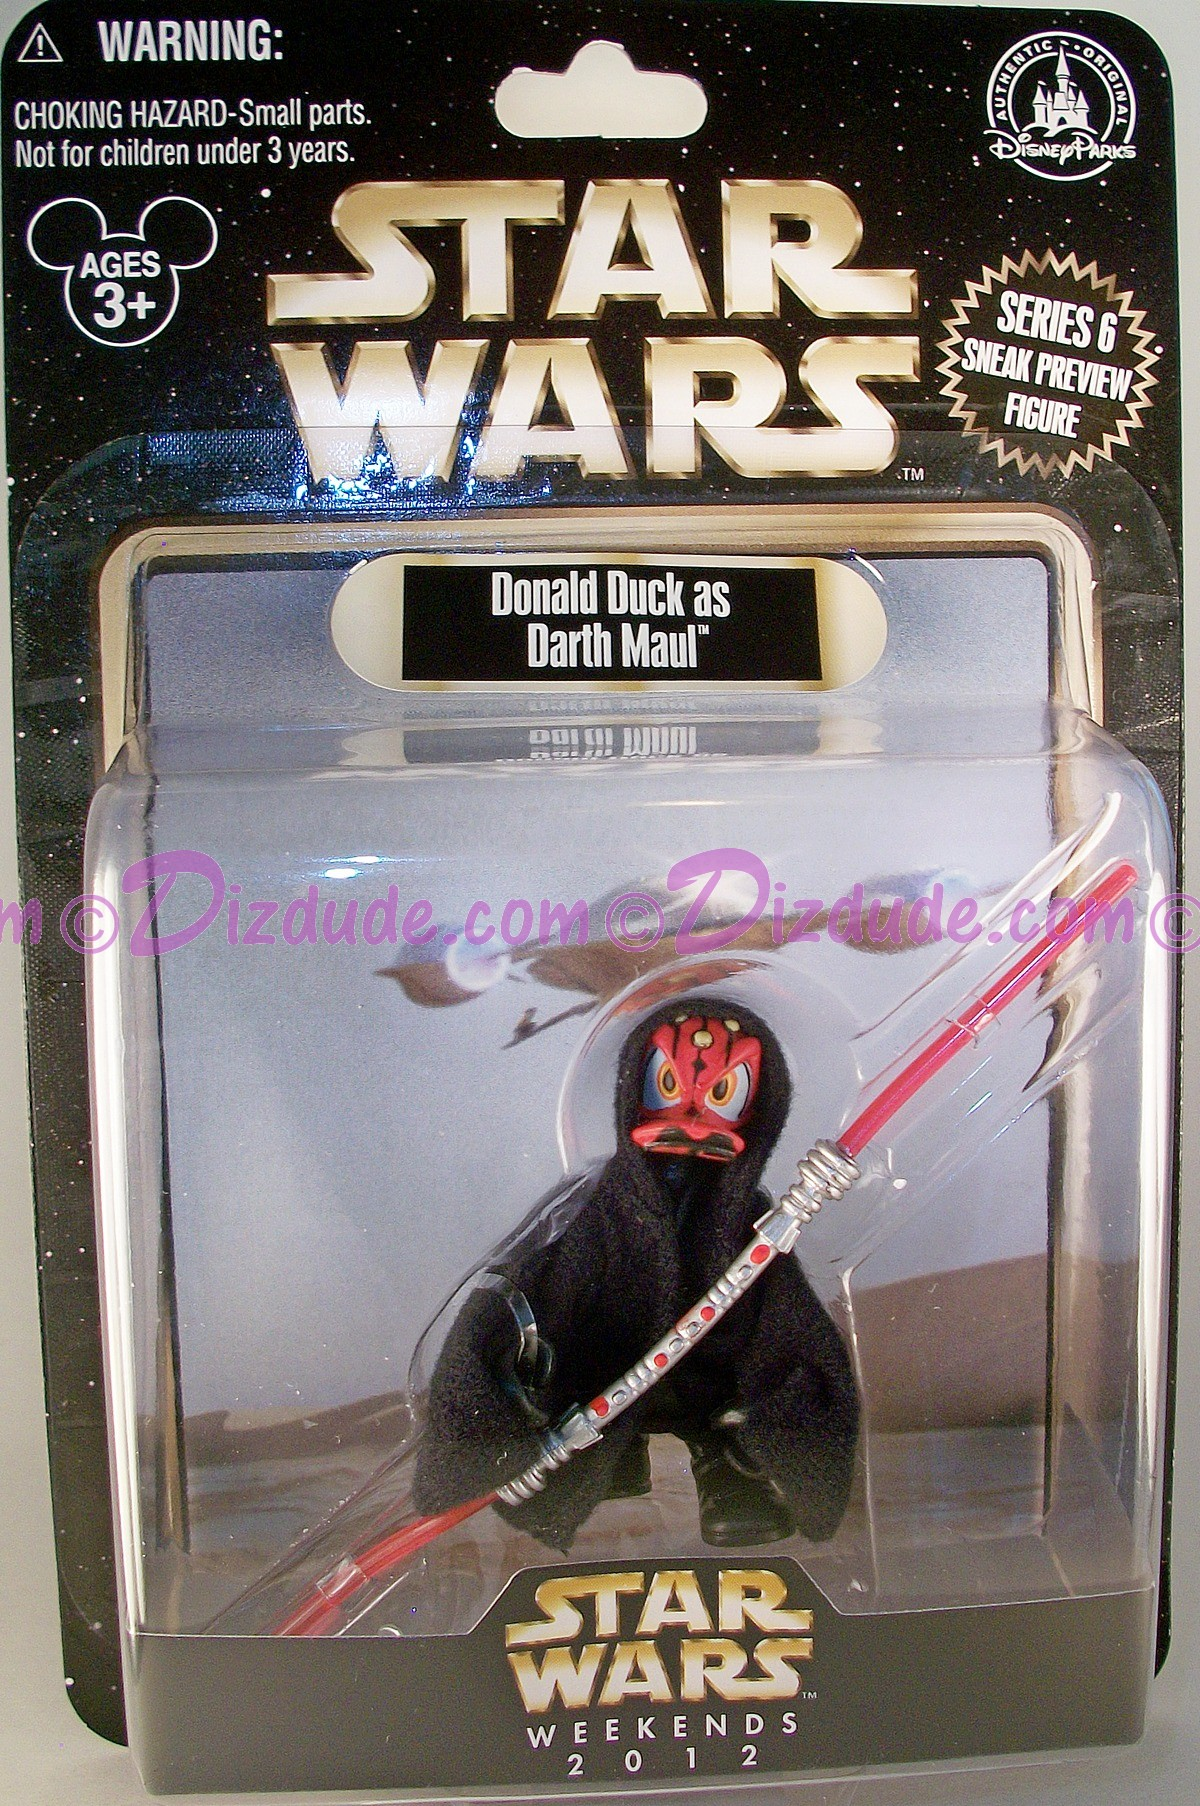 Official Disney Star Wars Weekend 2012 Donald Duck as Darth Maul Action preview series 6 Figure - © Dizdude.com